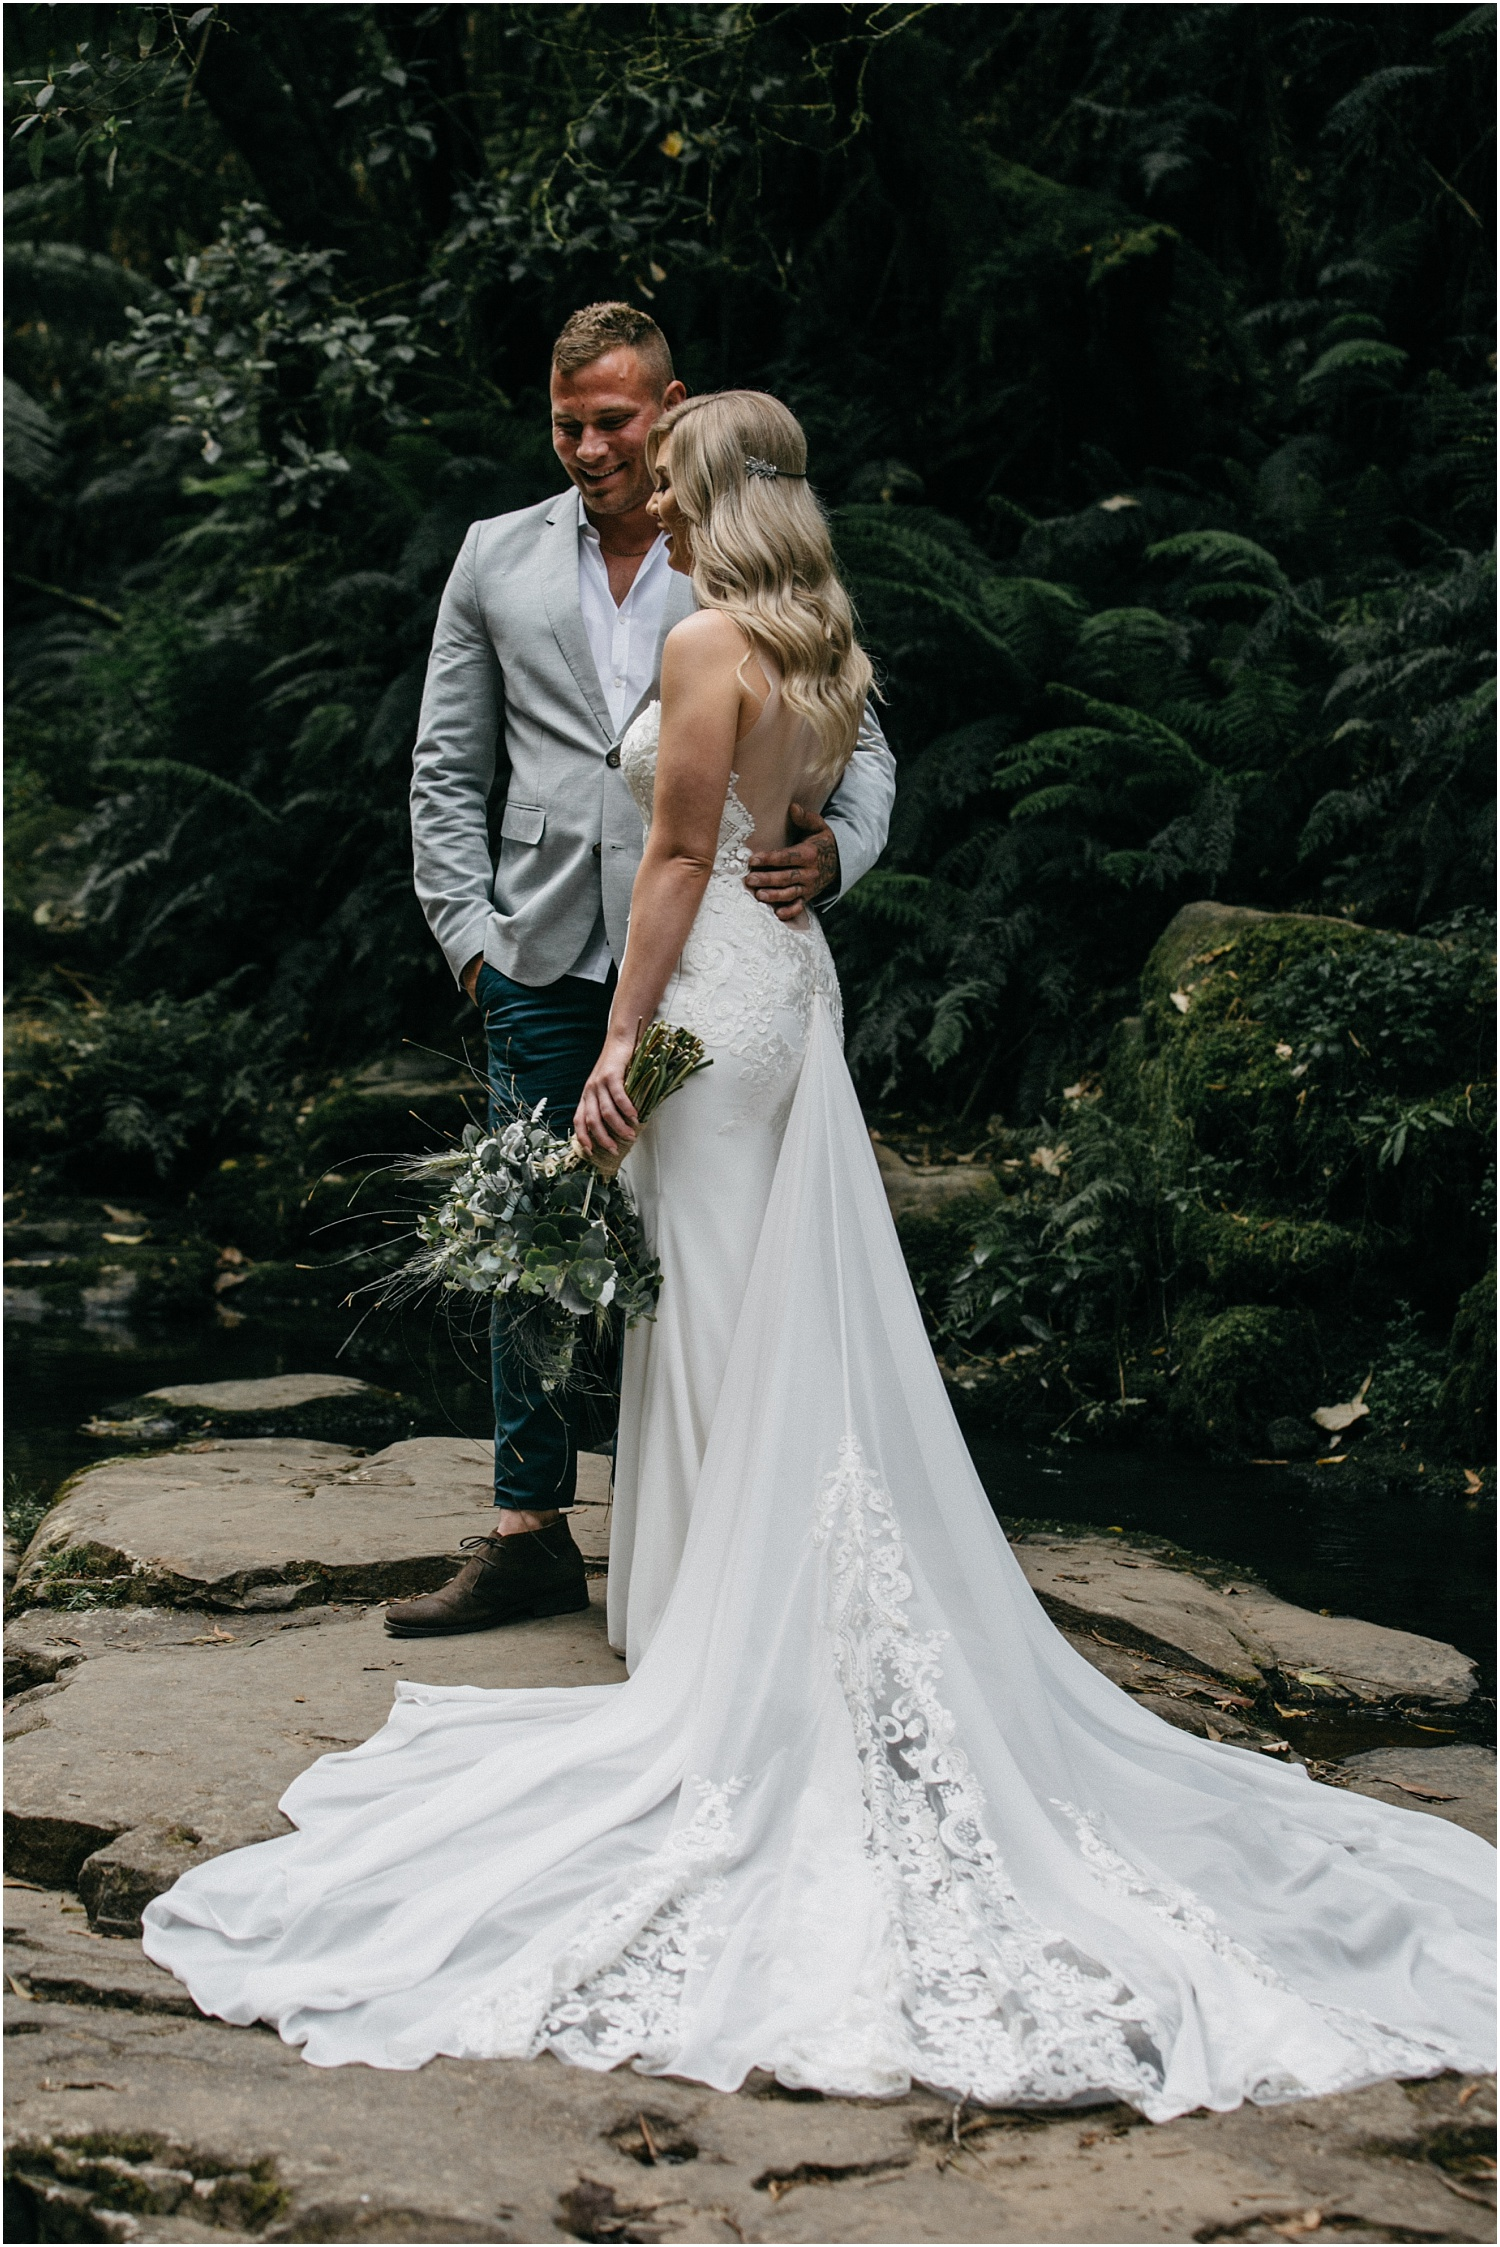 Renee and Ash's real elopement in Lorne on the Great Ocean Roadwith the ceremony at erskin falls._0077.jpg